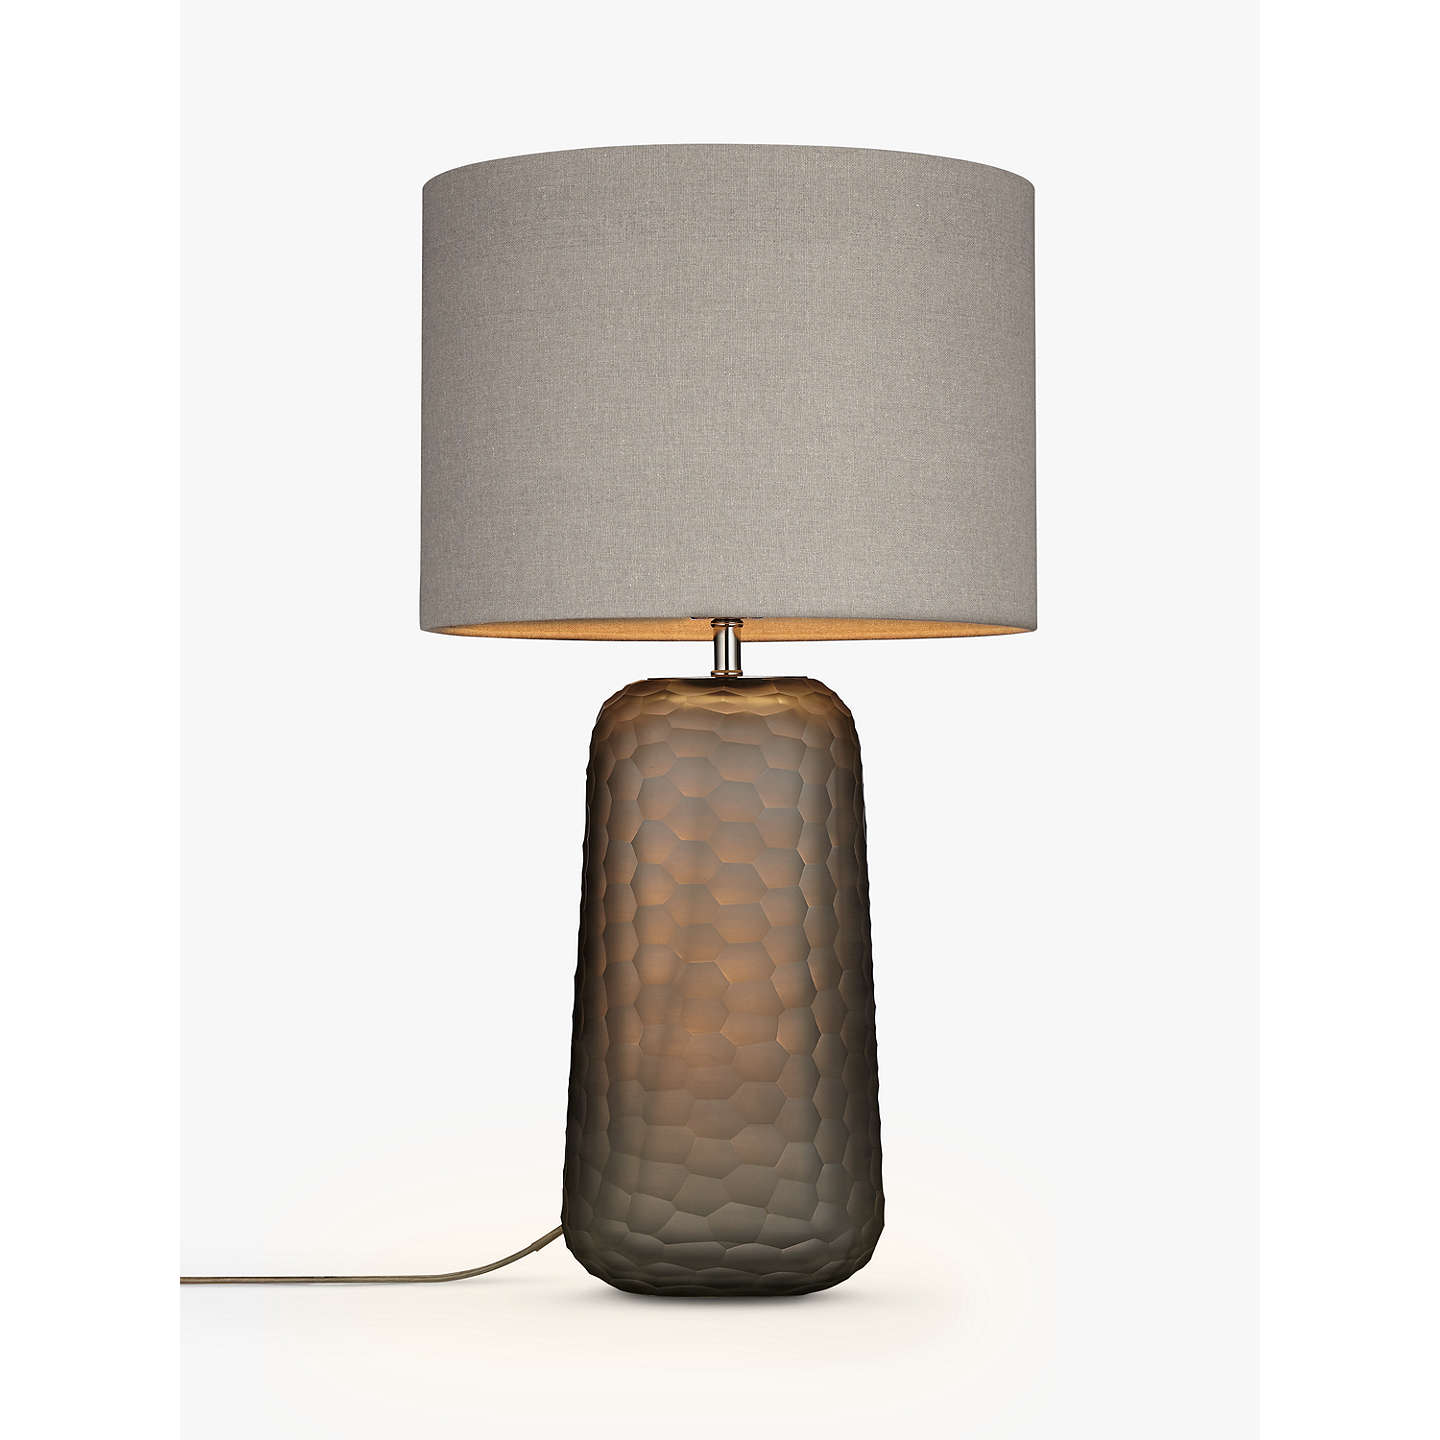 john lewis lucian frosted glass table lamp grey at john lewis